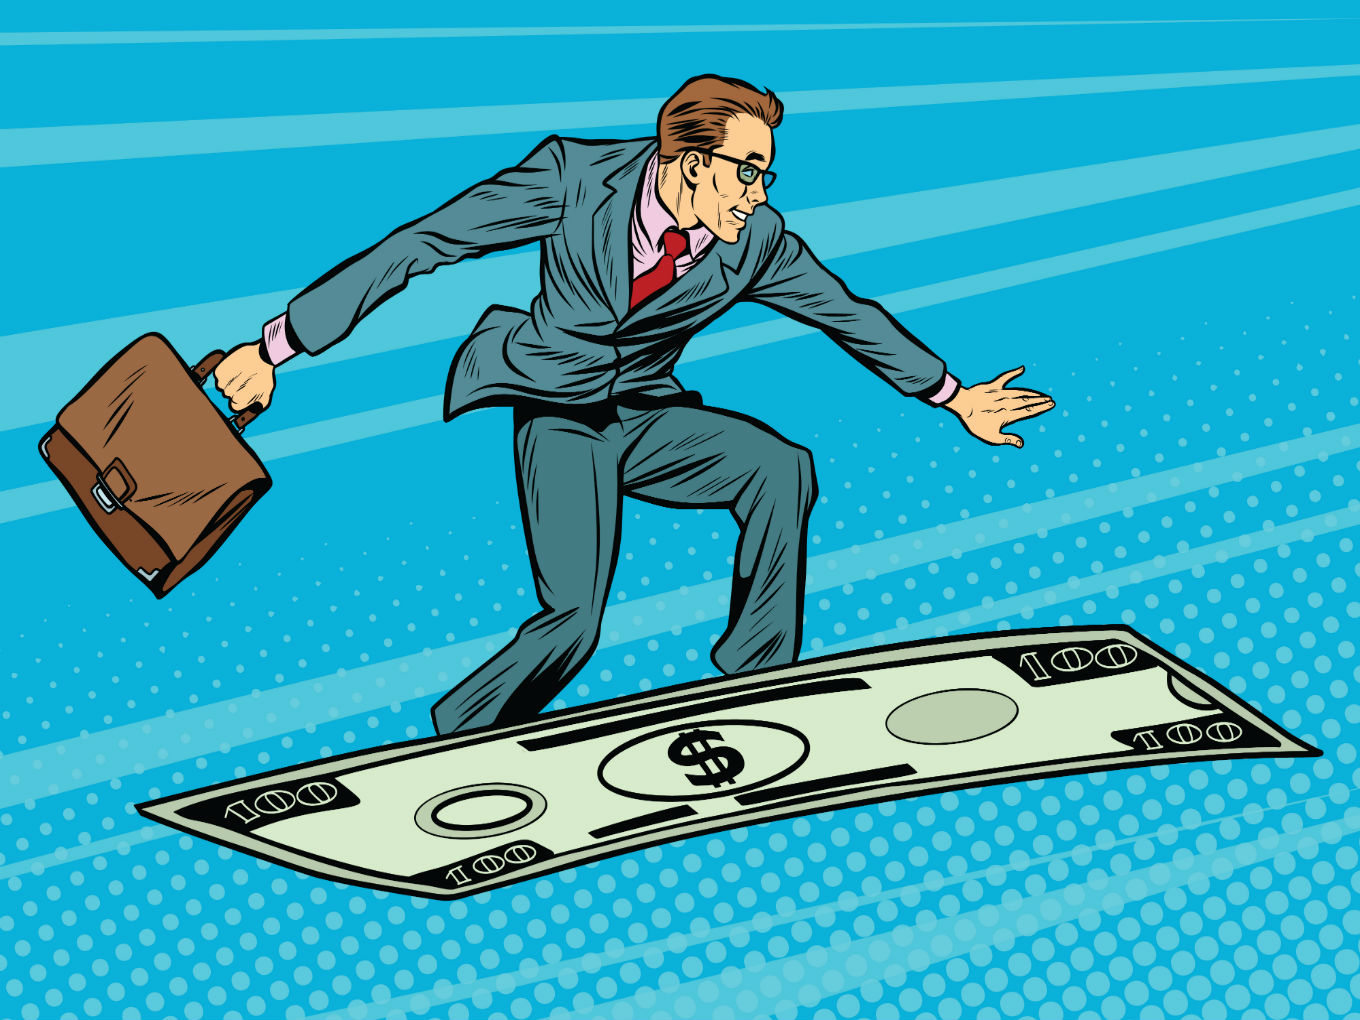 Startup 101: Here's How You Can Find The Right Angel Investor For Your Startup